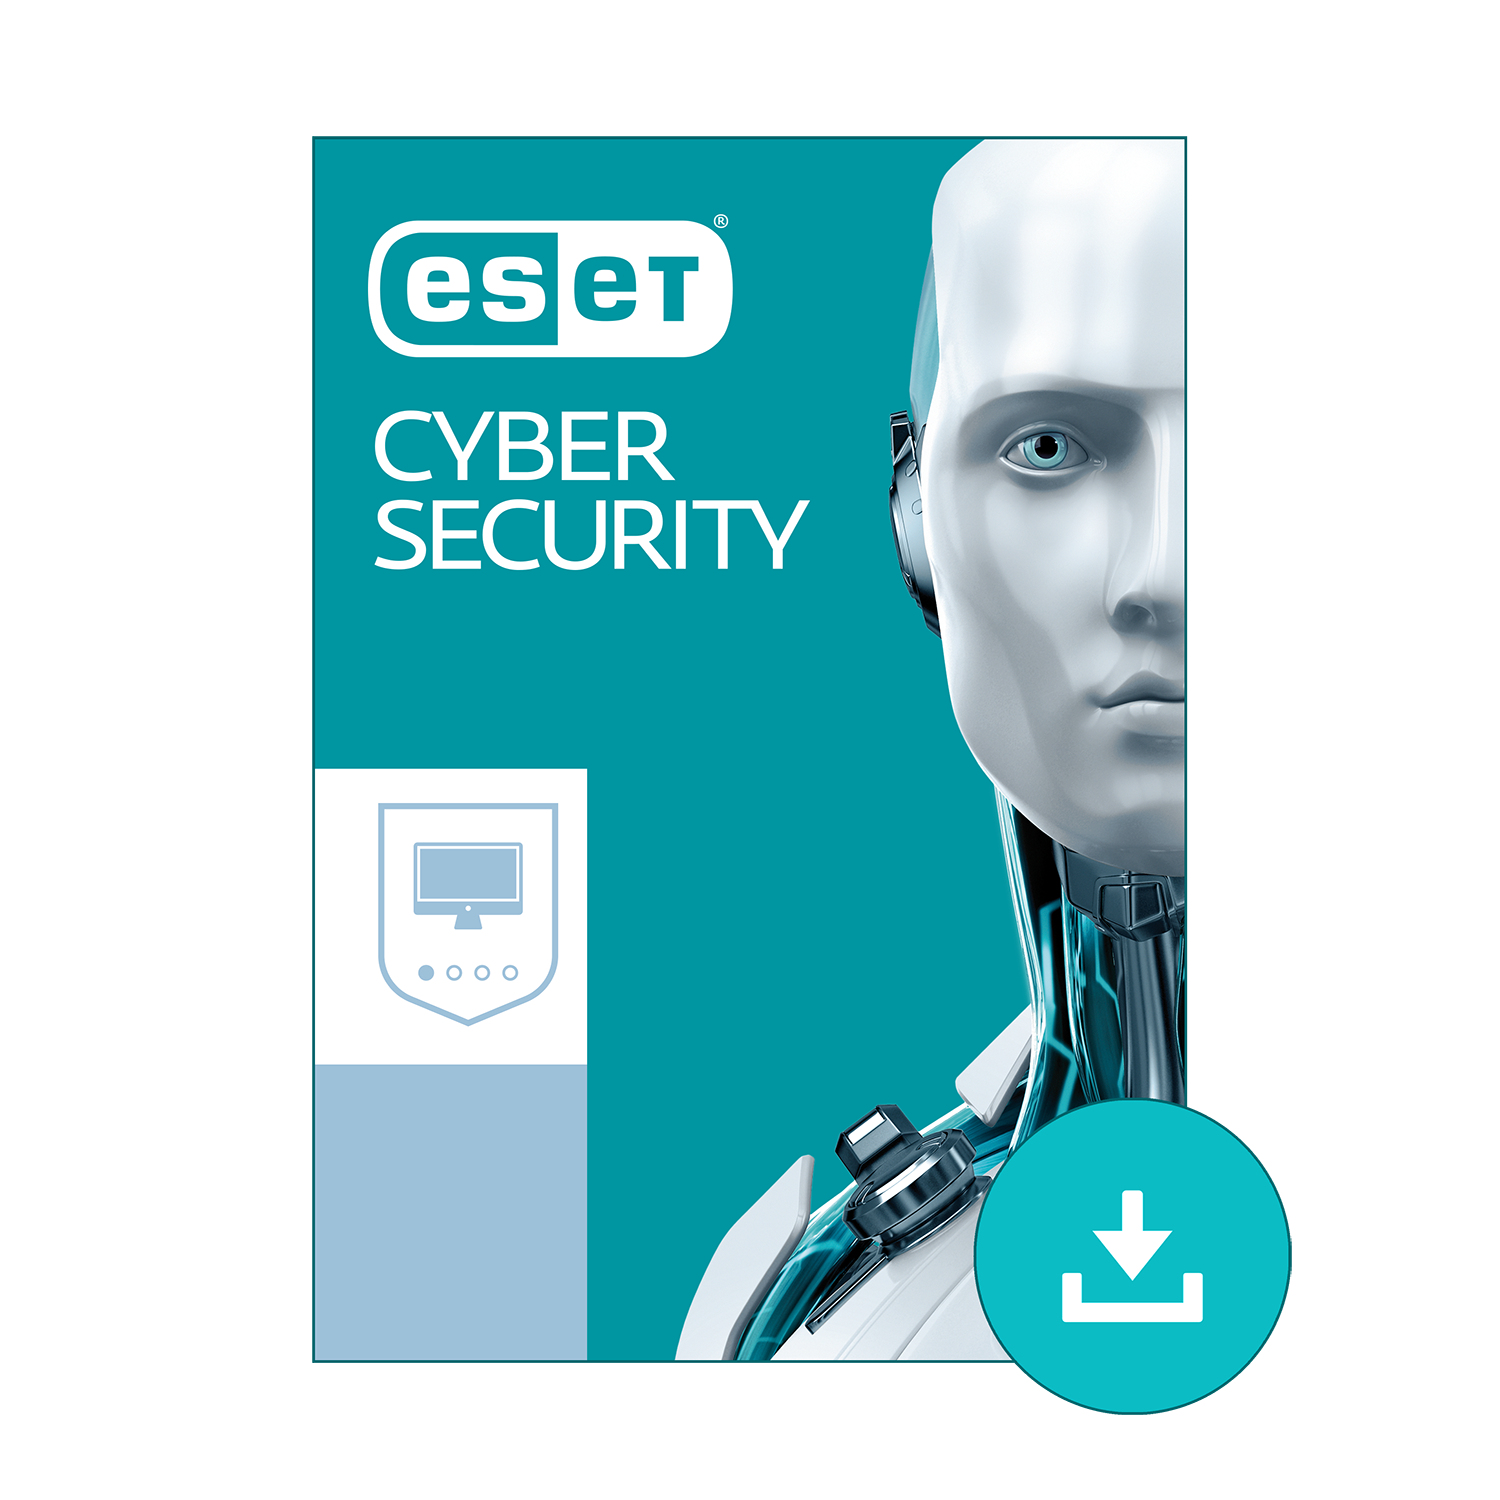 ESET Cyber Security - Basic Antivirus for Mac 2019 | 1 Device & 1 Year | Official Download with License (Best Antivirus App For Mac)